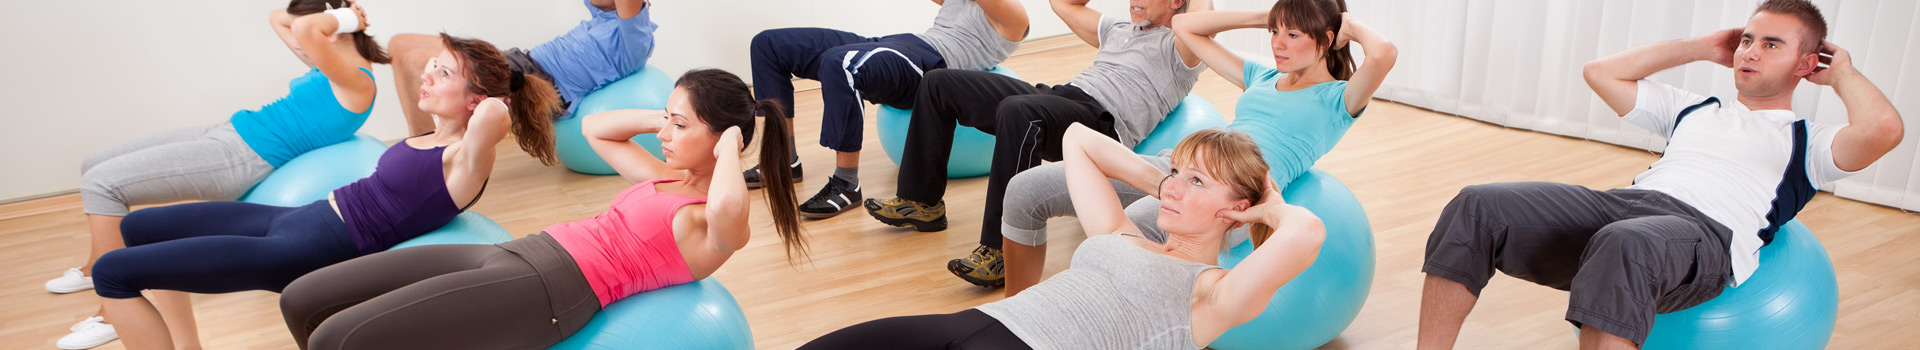 pilates instructors - wellbeing insurance